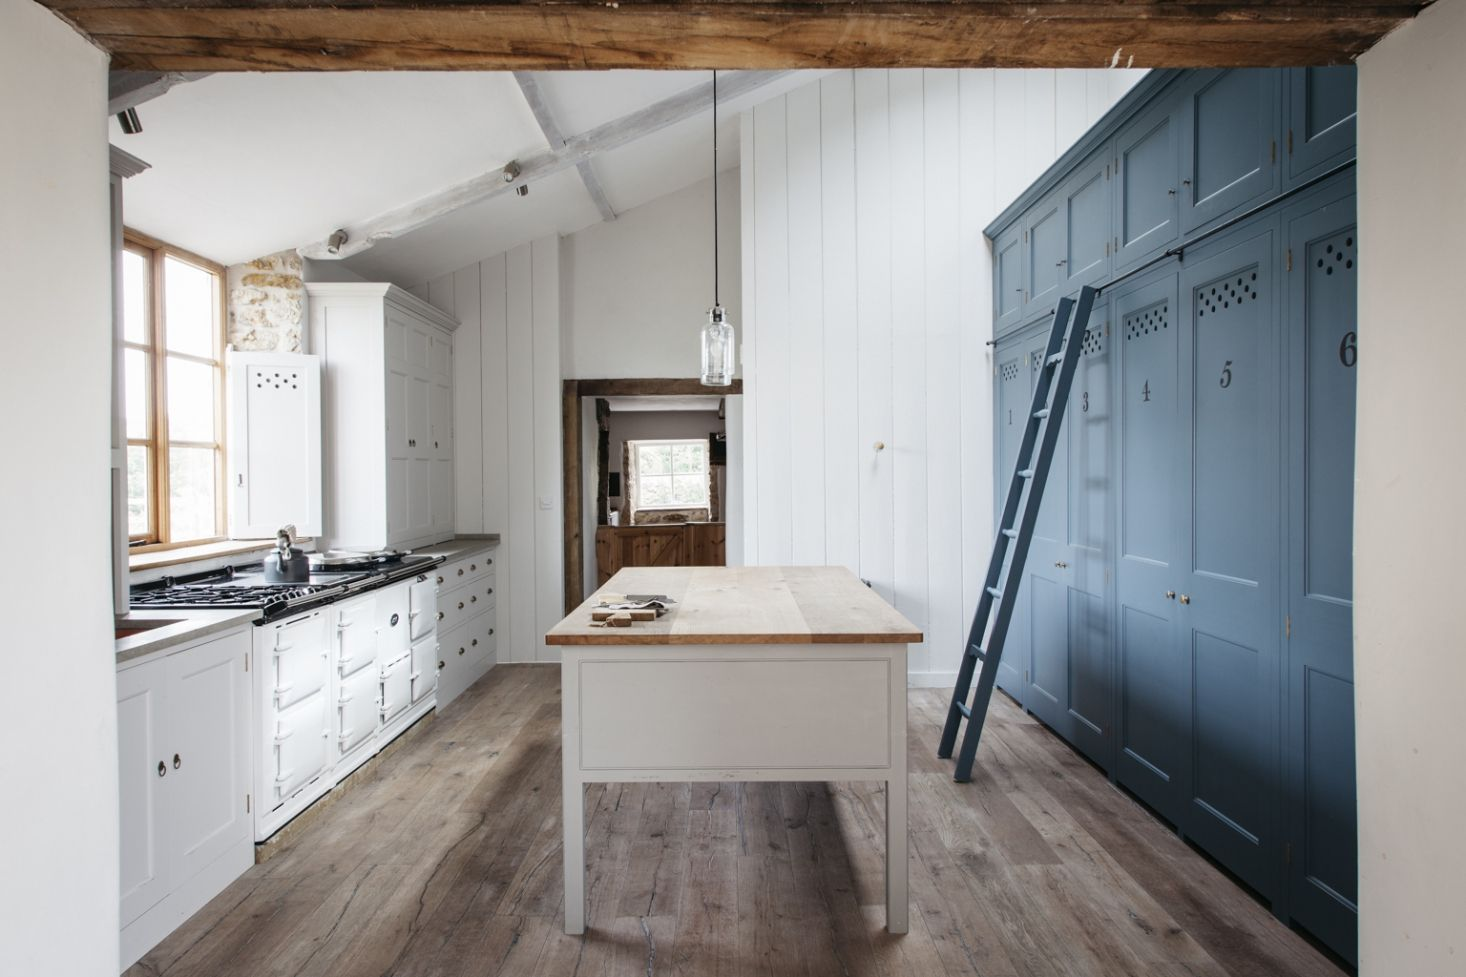 Trend Alert 9 Kitchens With Floor To Ceiling Cabinetry Remodelista Kitchen Cabinetry Design Plain English Kitchen Farmhouse Kitchen